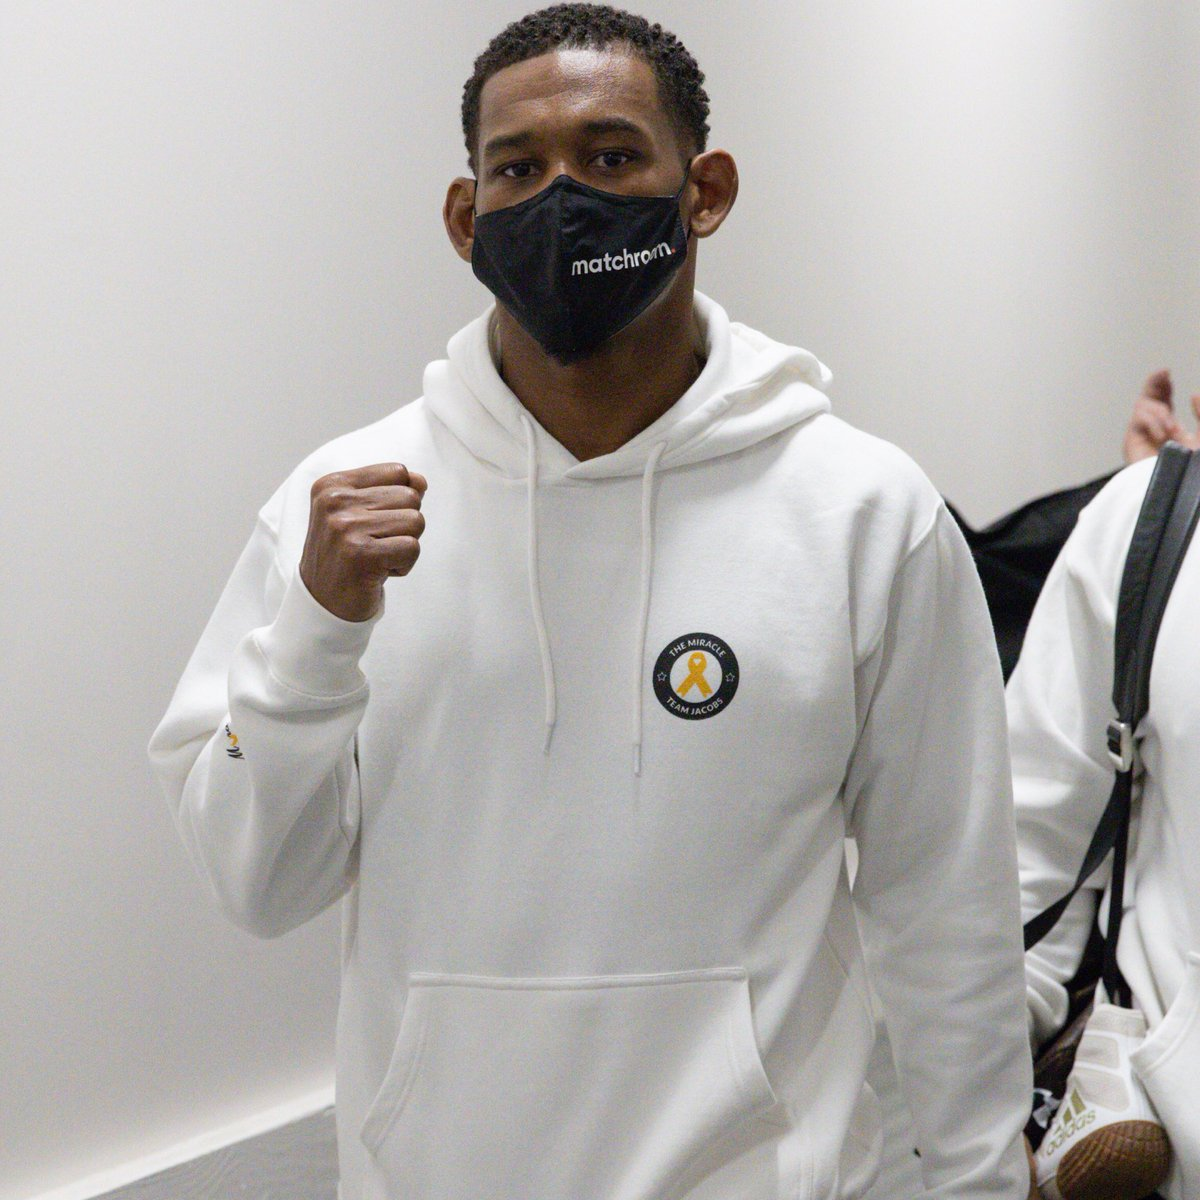 The Main Event is in the building. 📸  #JacobsRosado https://t.co/EumQAFUHHm